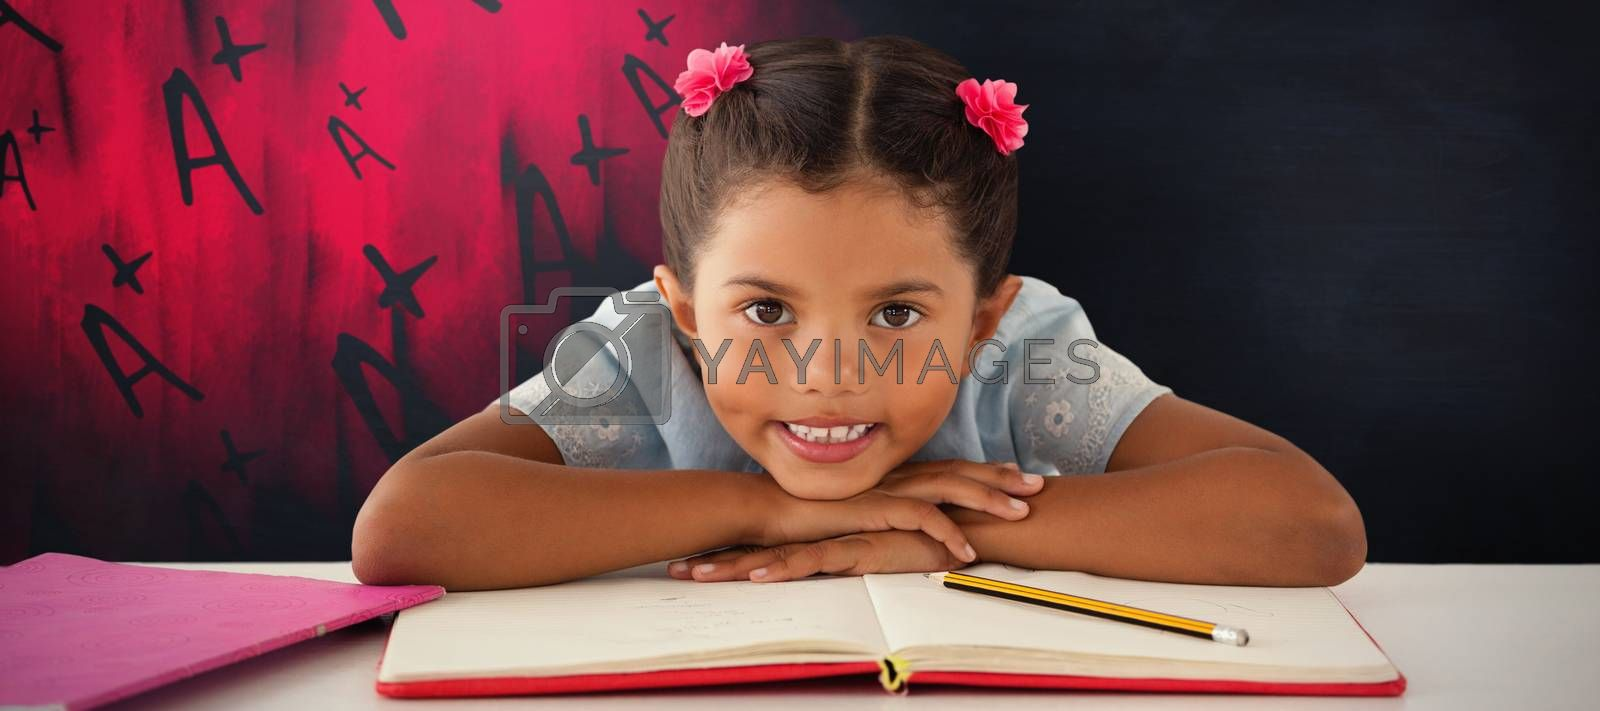 Composite image of girl clenching teeth while leaning on book by Wavebreakmedia